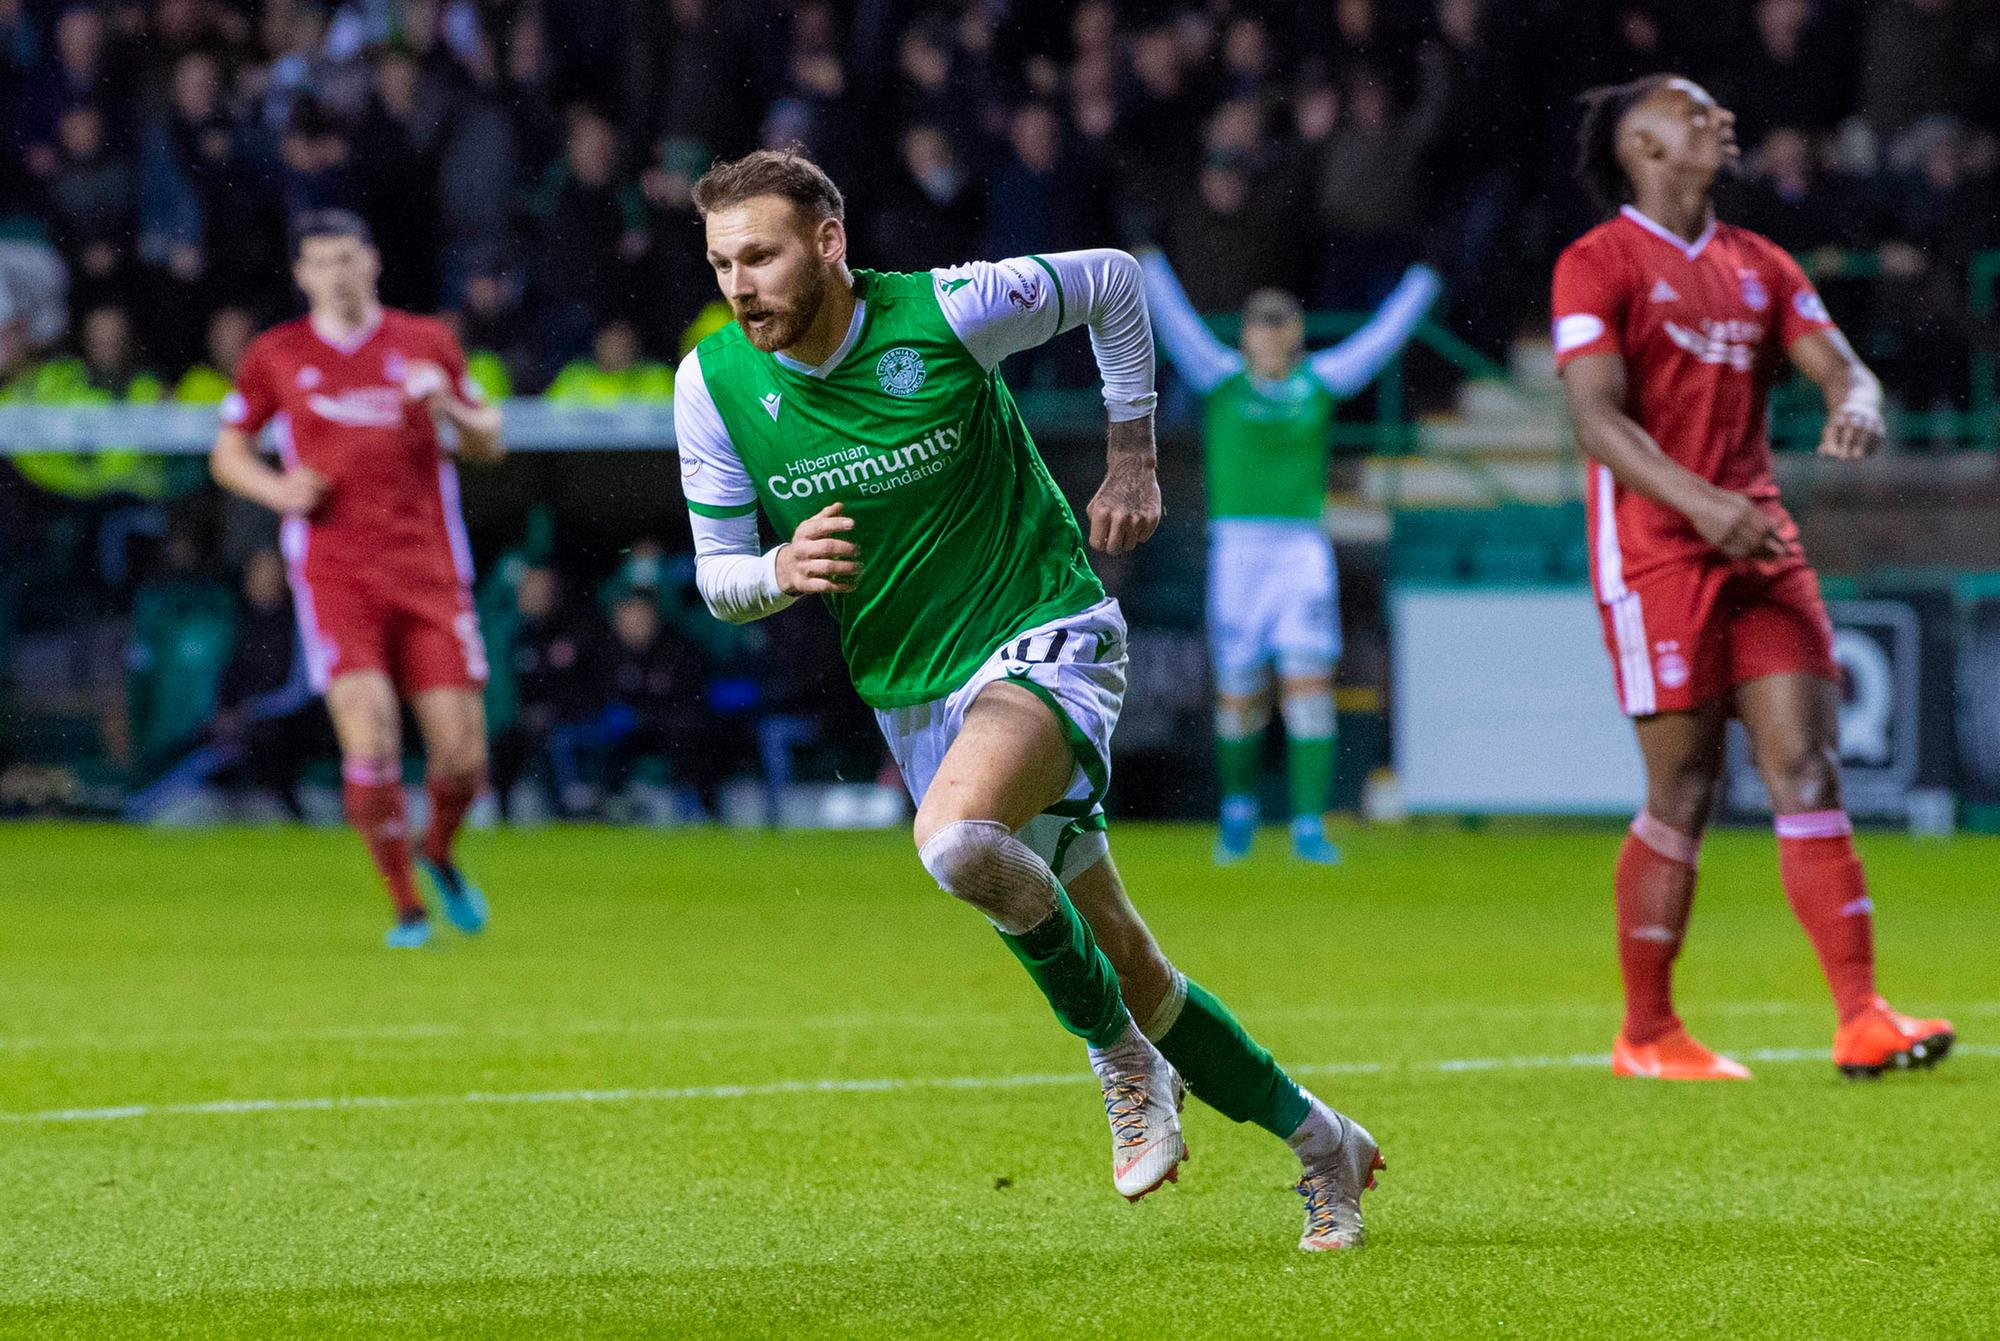 Hibs' best players, worst signing, goal of season and more - our writers give their verdict on season so far